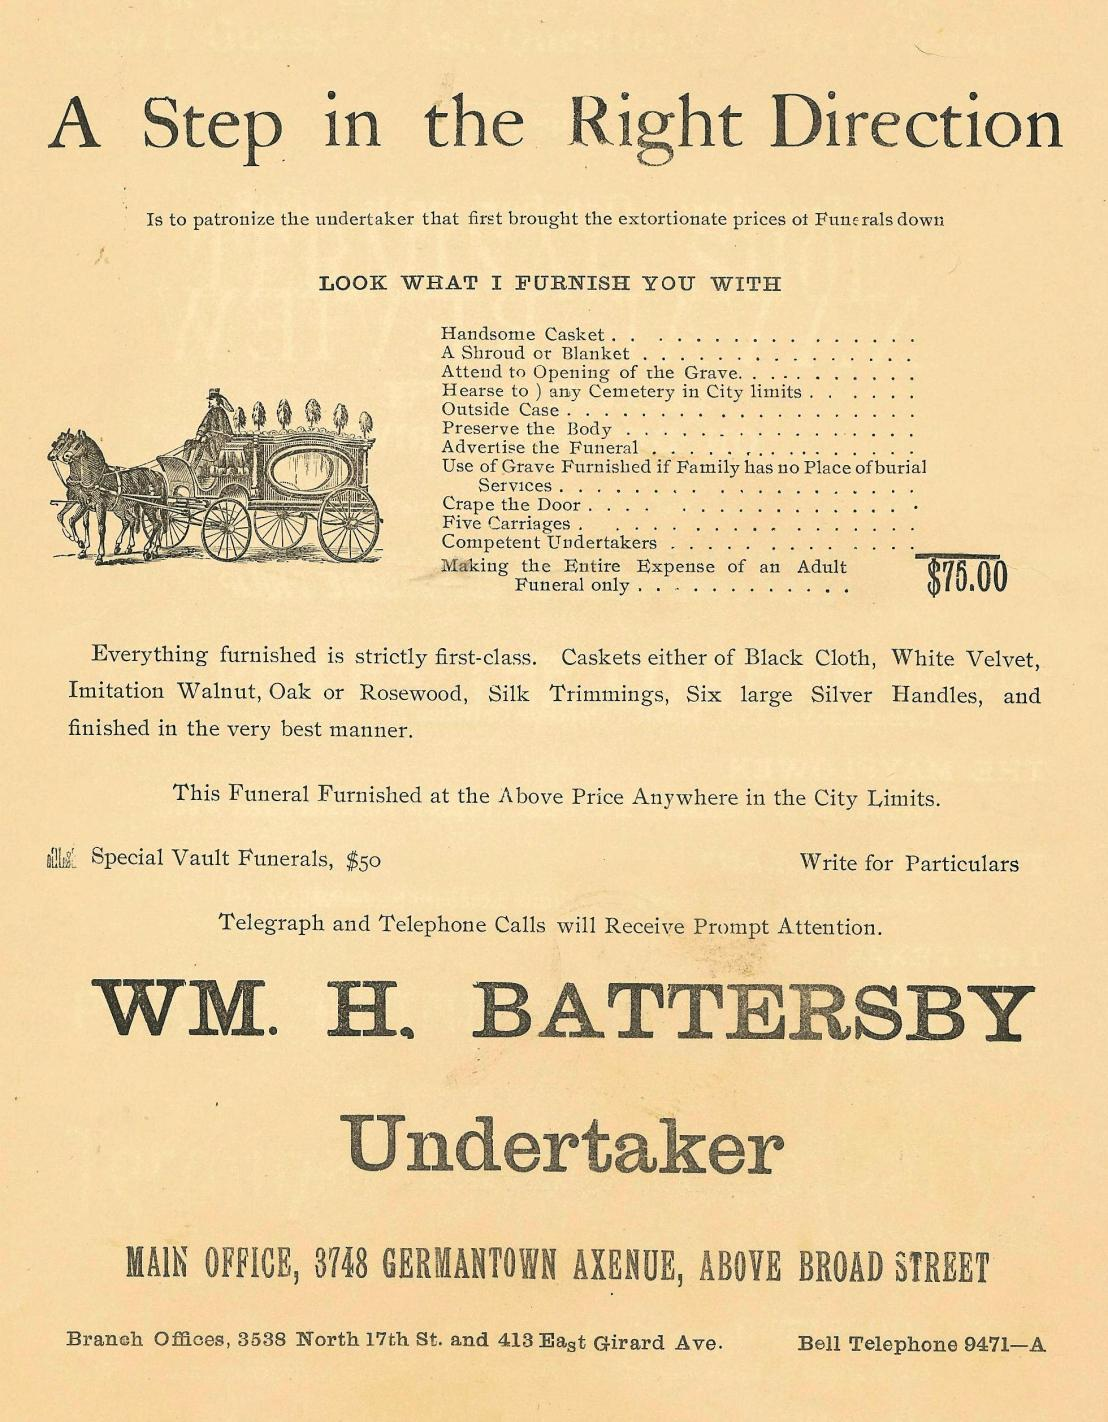 MM Battersby, undertaker 1898 Peace Jubilee